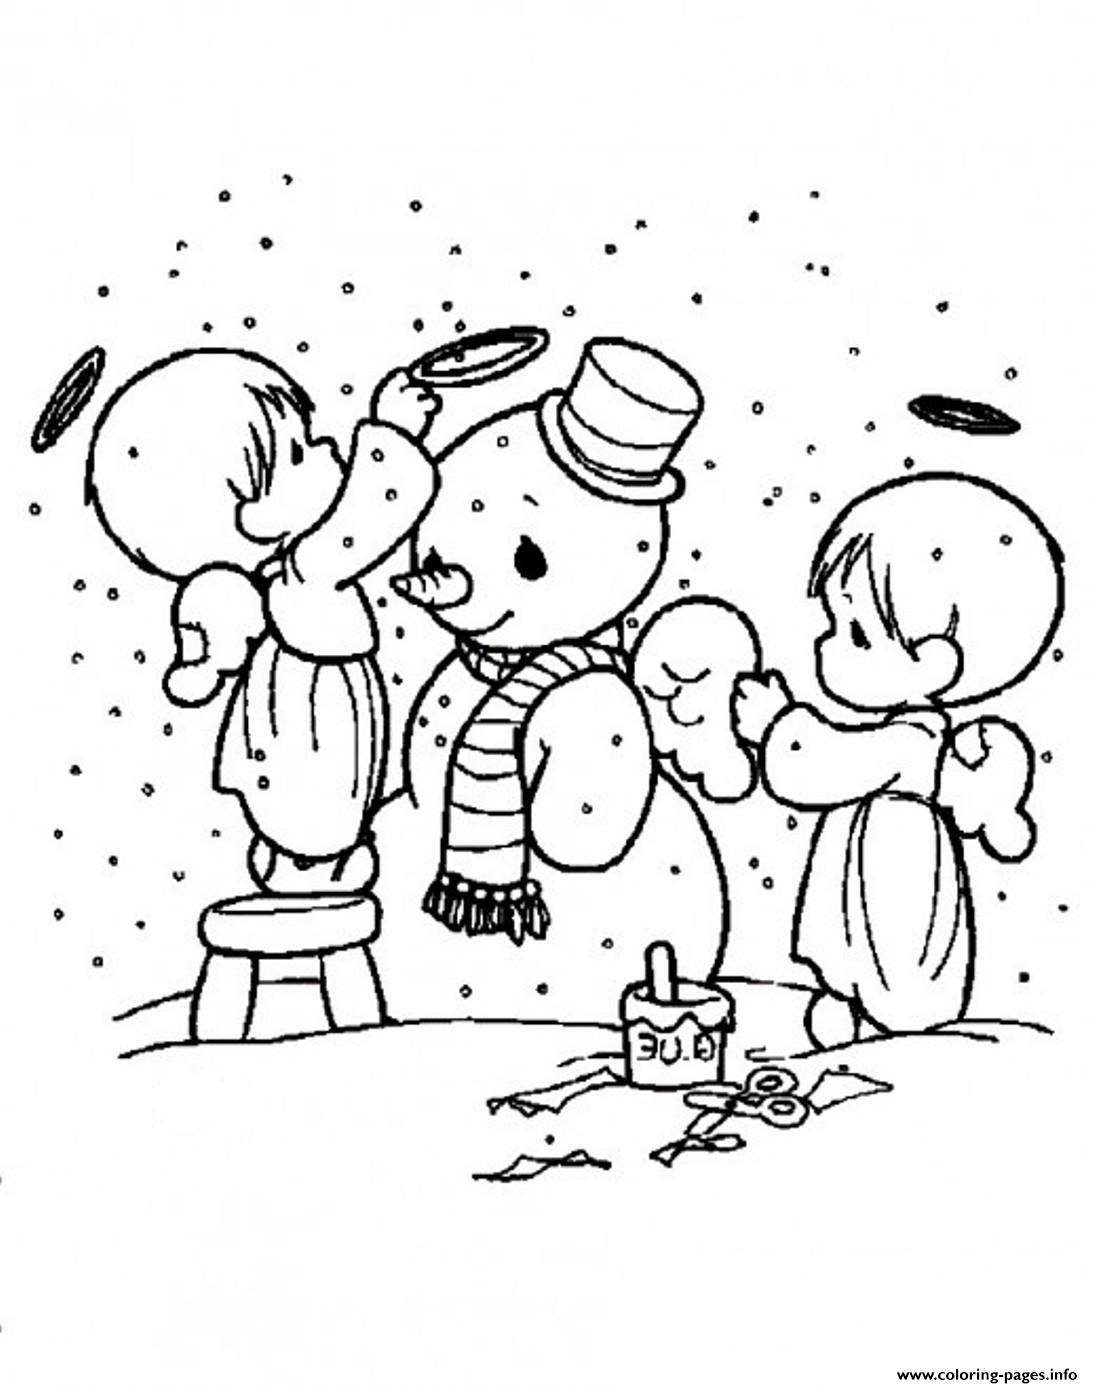 Snowman S Cute Angels Decorating Snowman5a20 Coloring